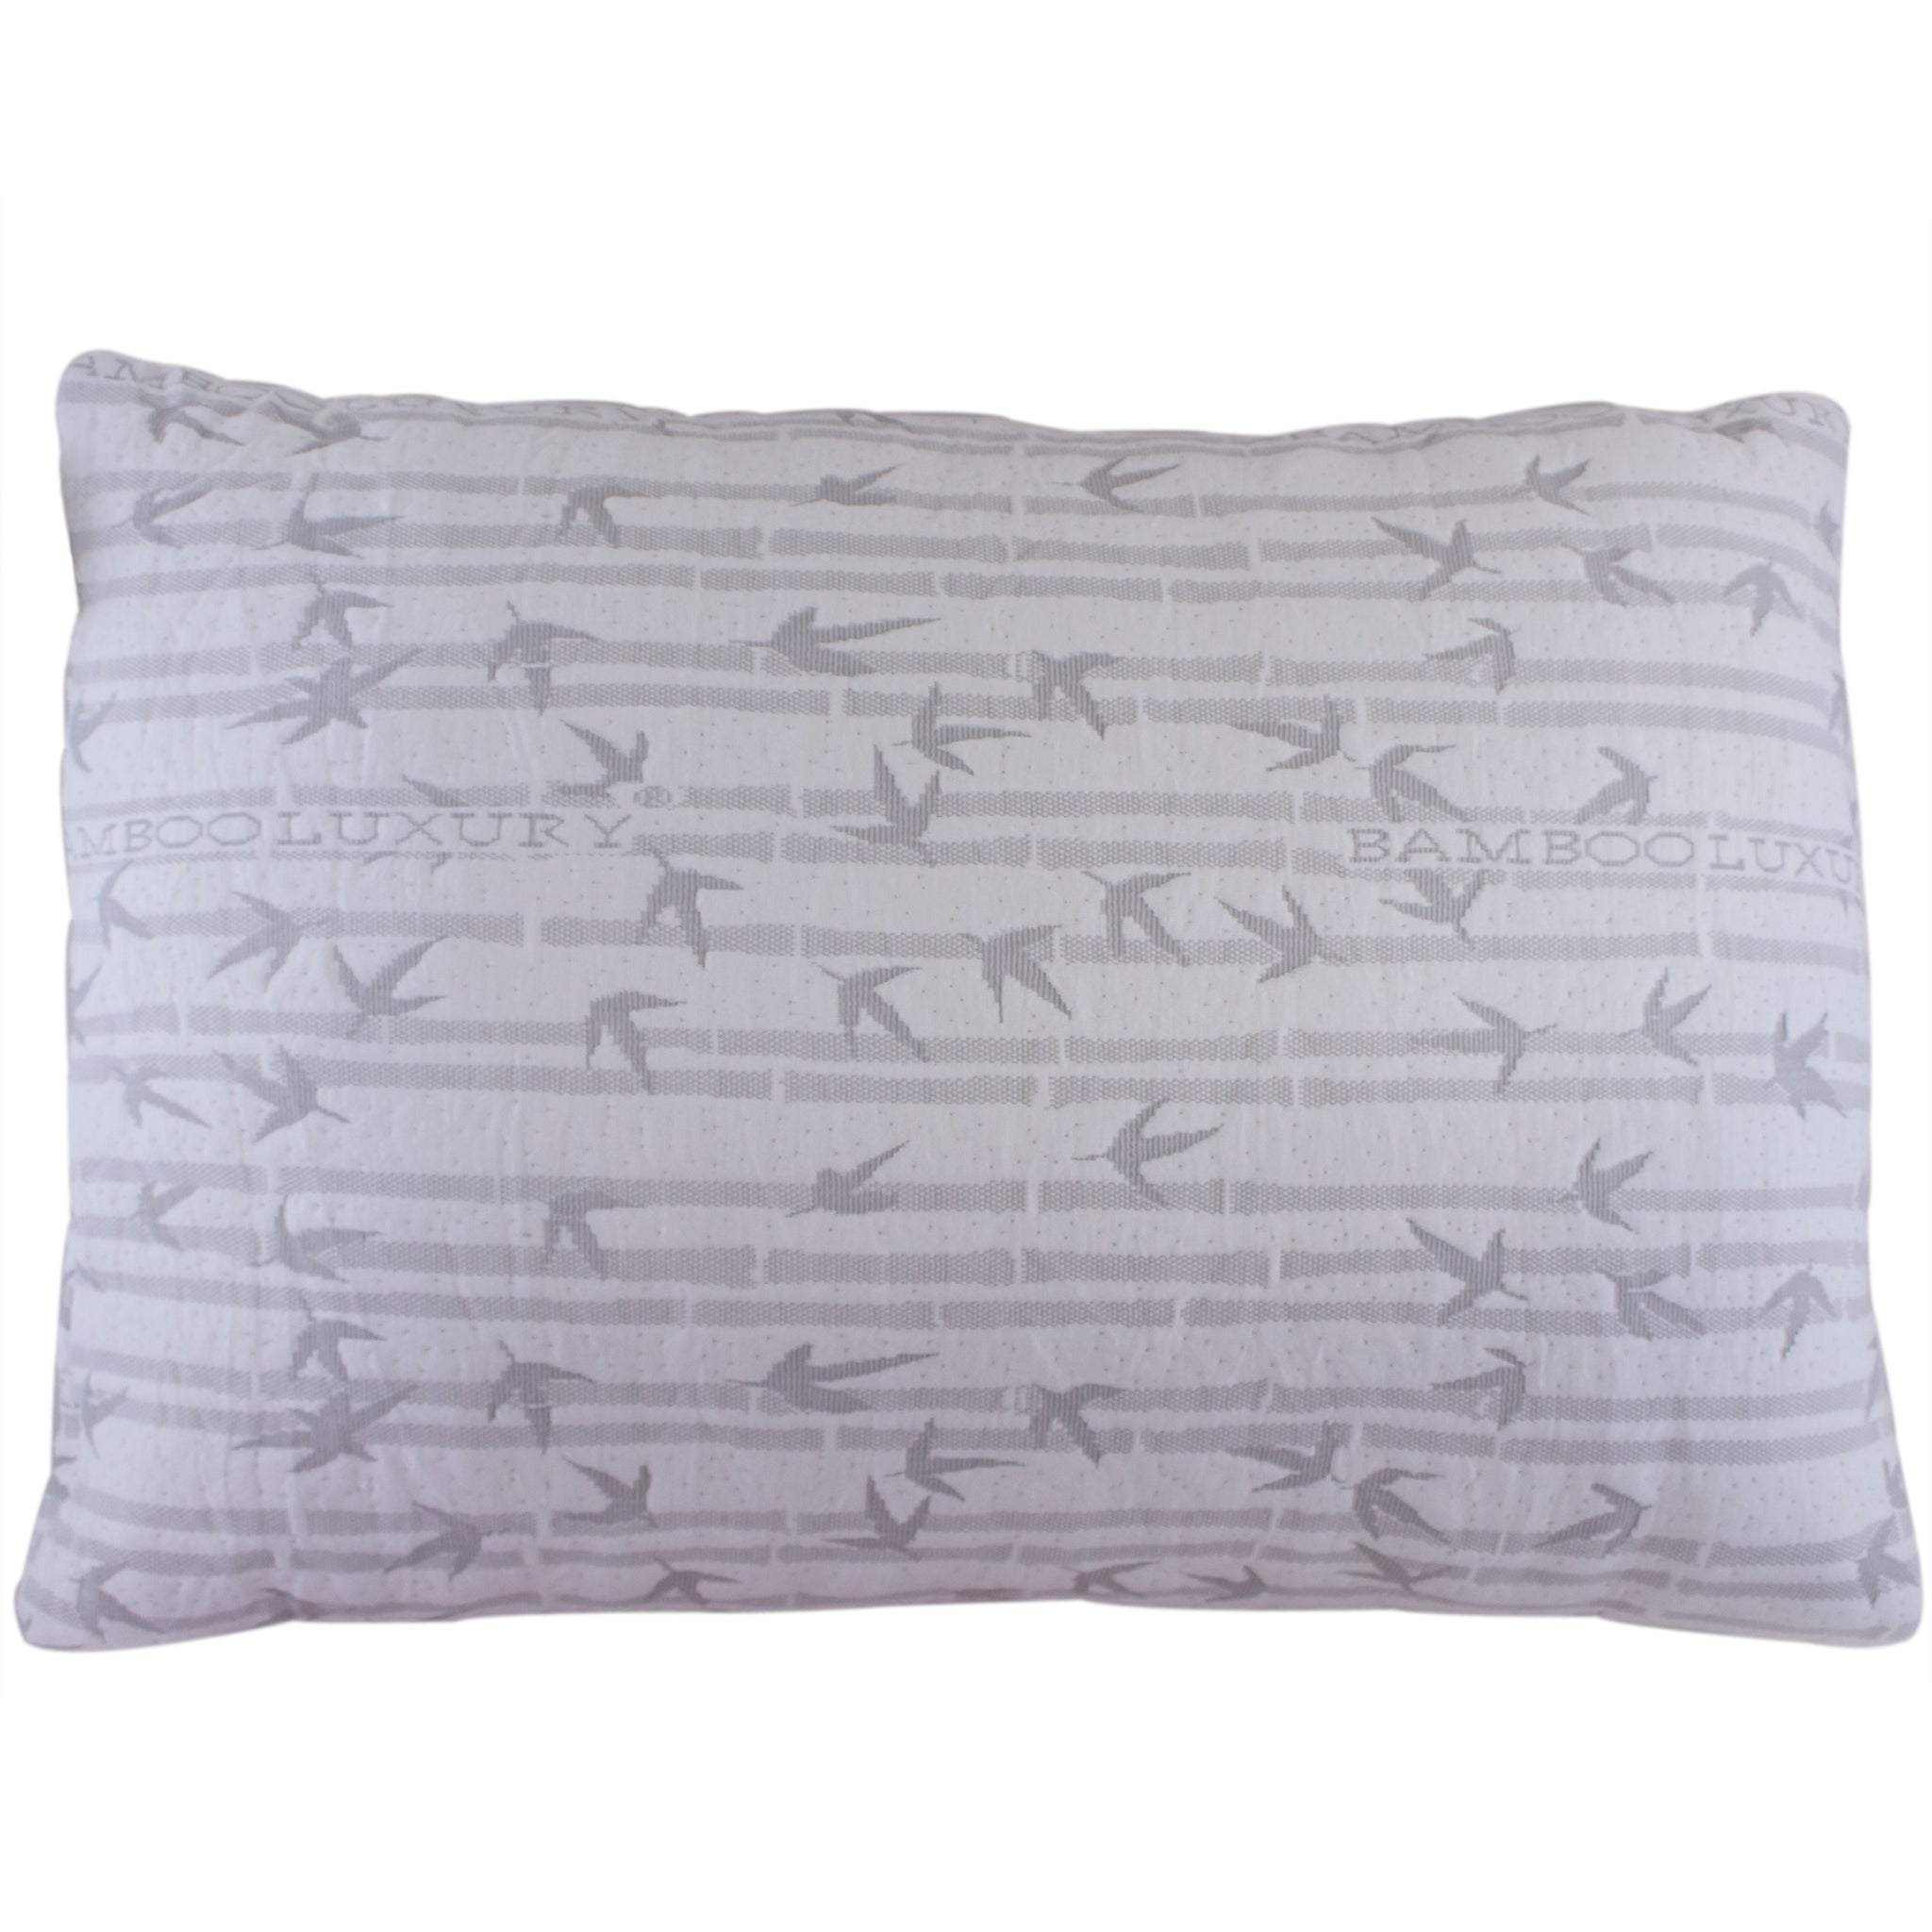 hypoallergenic pillow shredded memory reviews of adorable foam bamboo